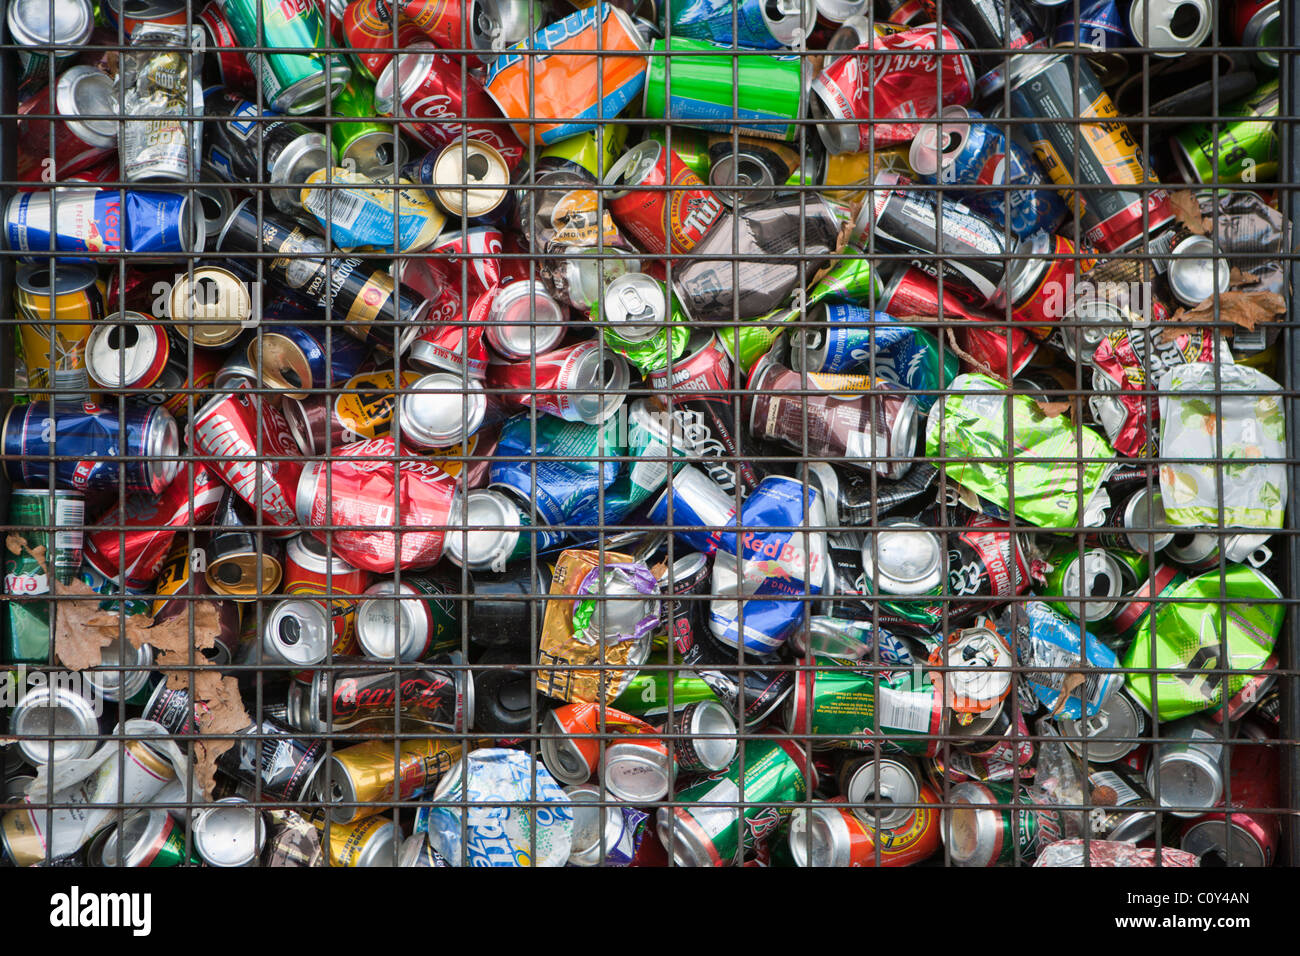 Recycling cage full of aluminium drinks cans, New Zealand. - Stock Image